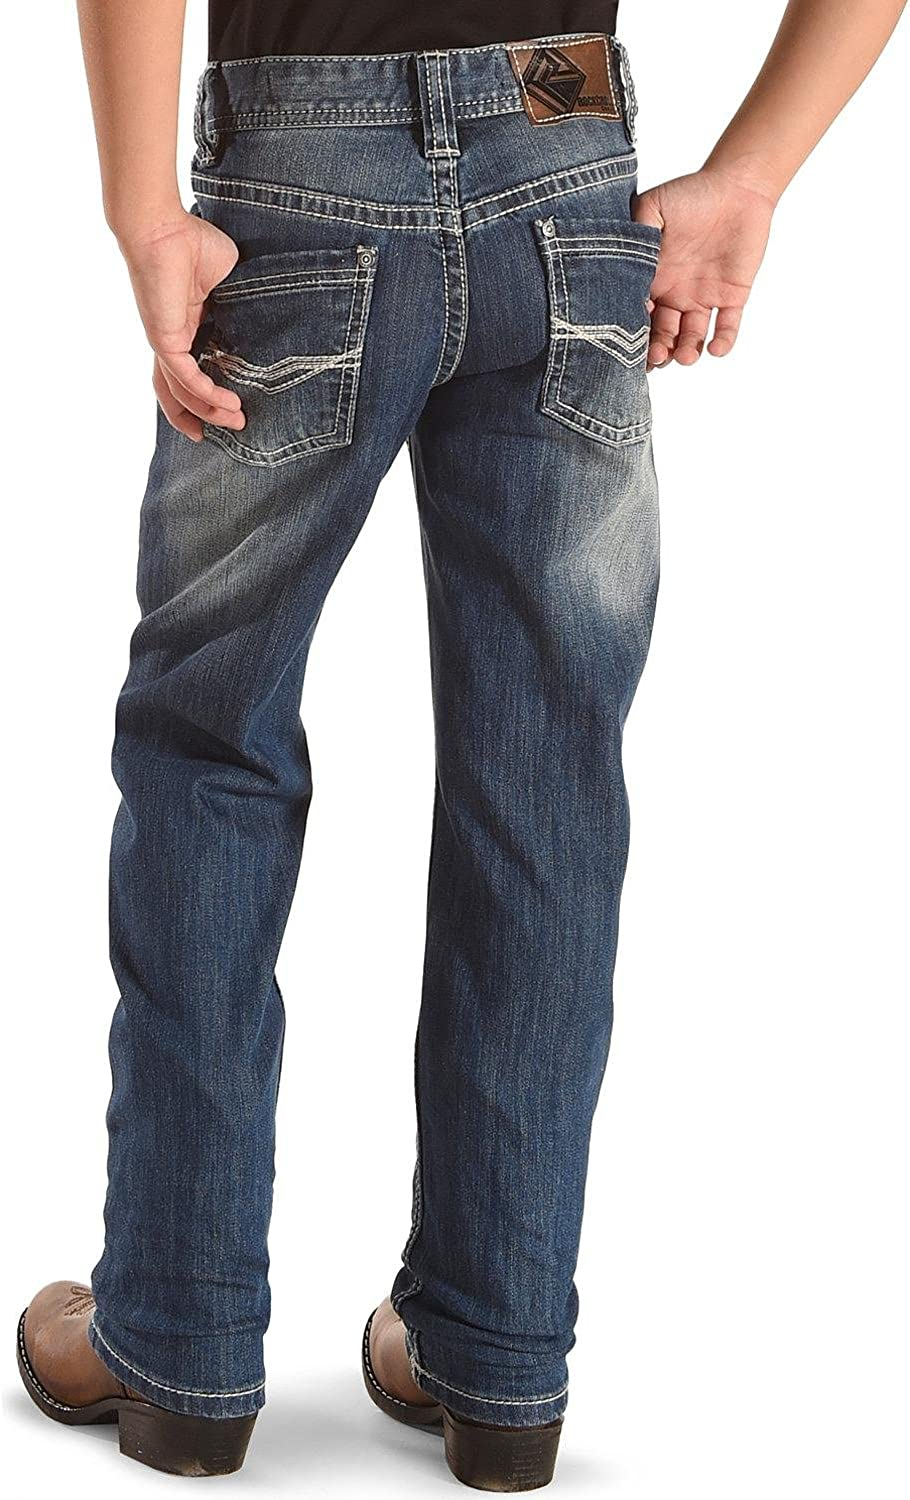 Rock Roll Cowboy Award Boys' and Reflex Revolver Jeans Boot V 4-20 New Free Shipping